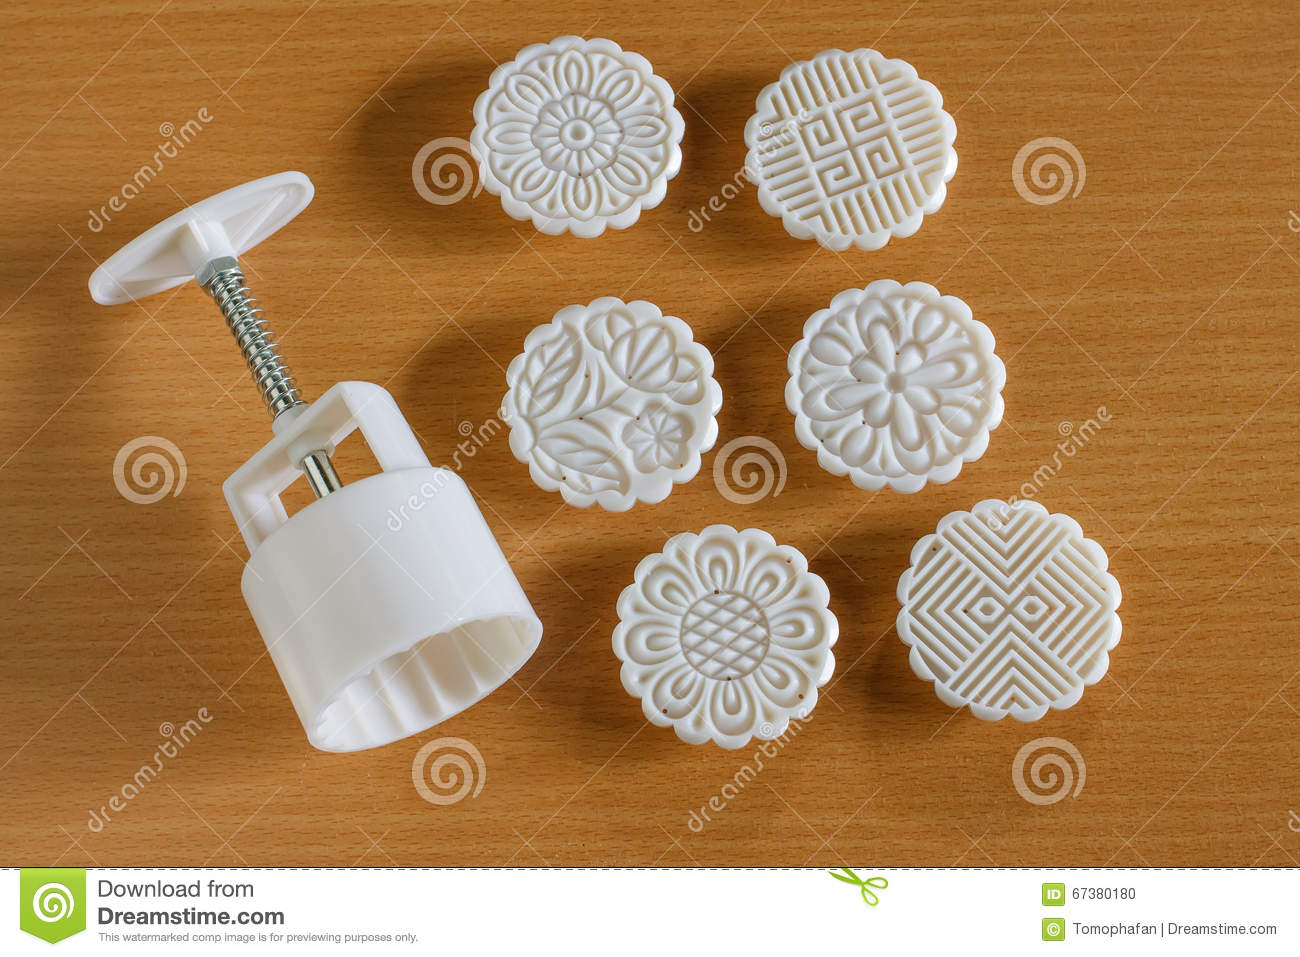 Moon cake mold stock photo. Image of kueh, mould, hand.